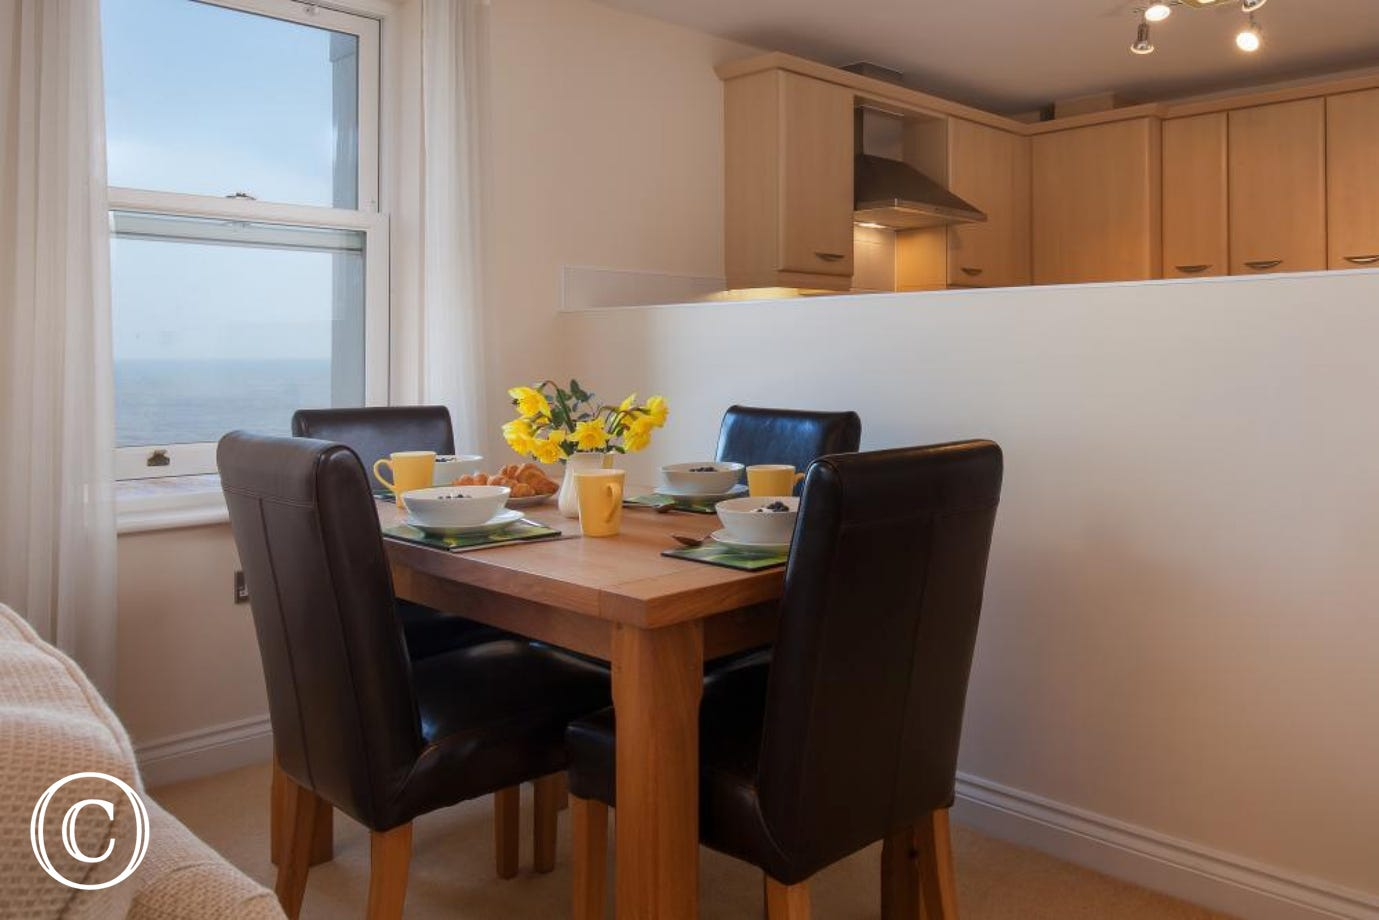 Modern Dining Area at 16 Great Cliff, a high-quality self-catering holiday apartment in Dawlish, South Devon